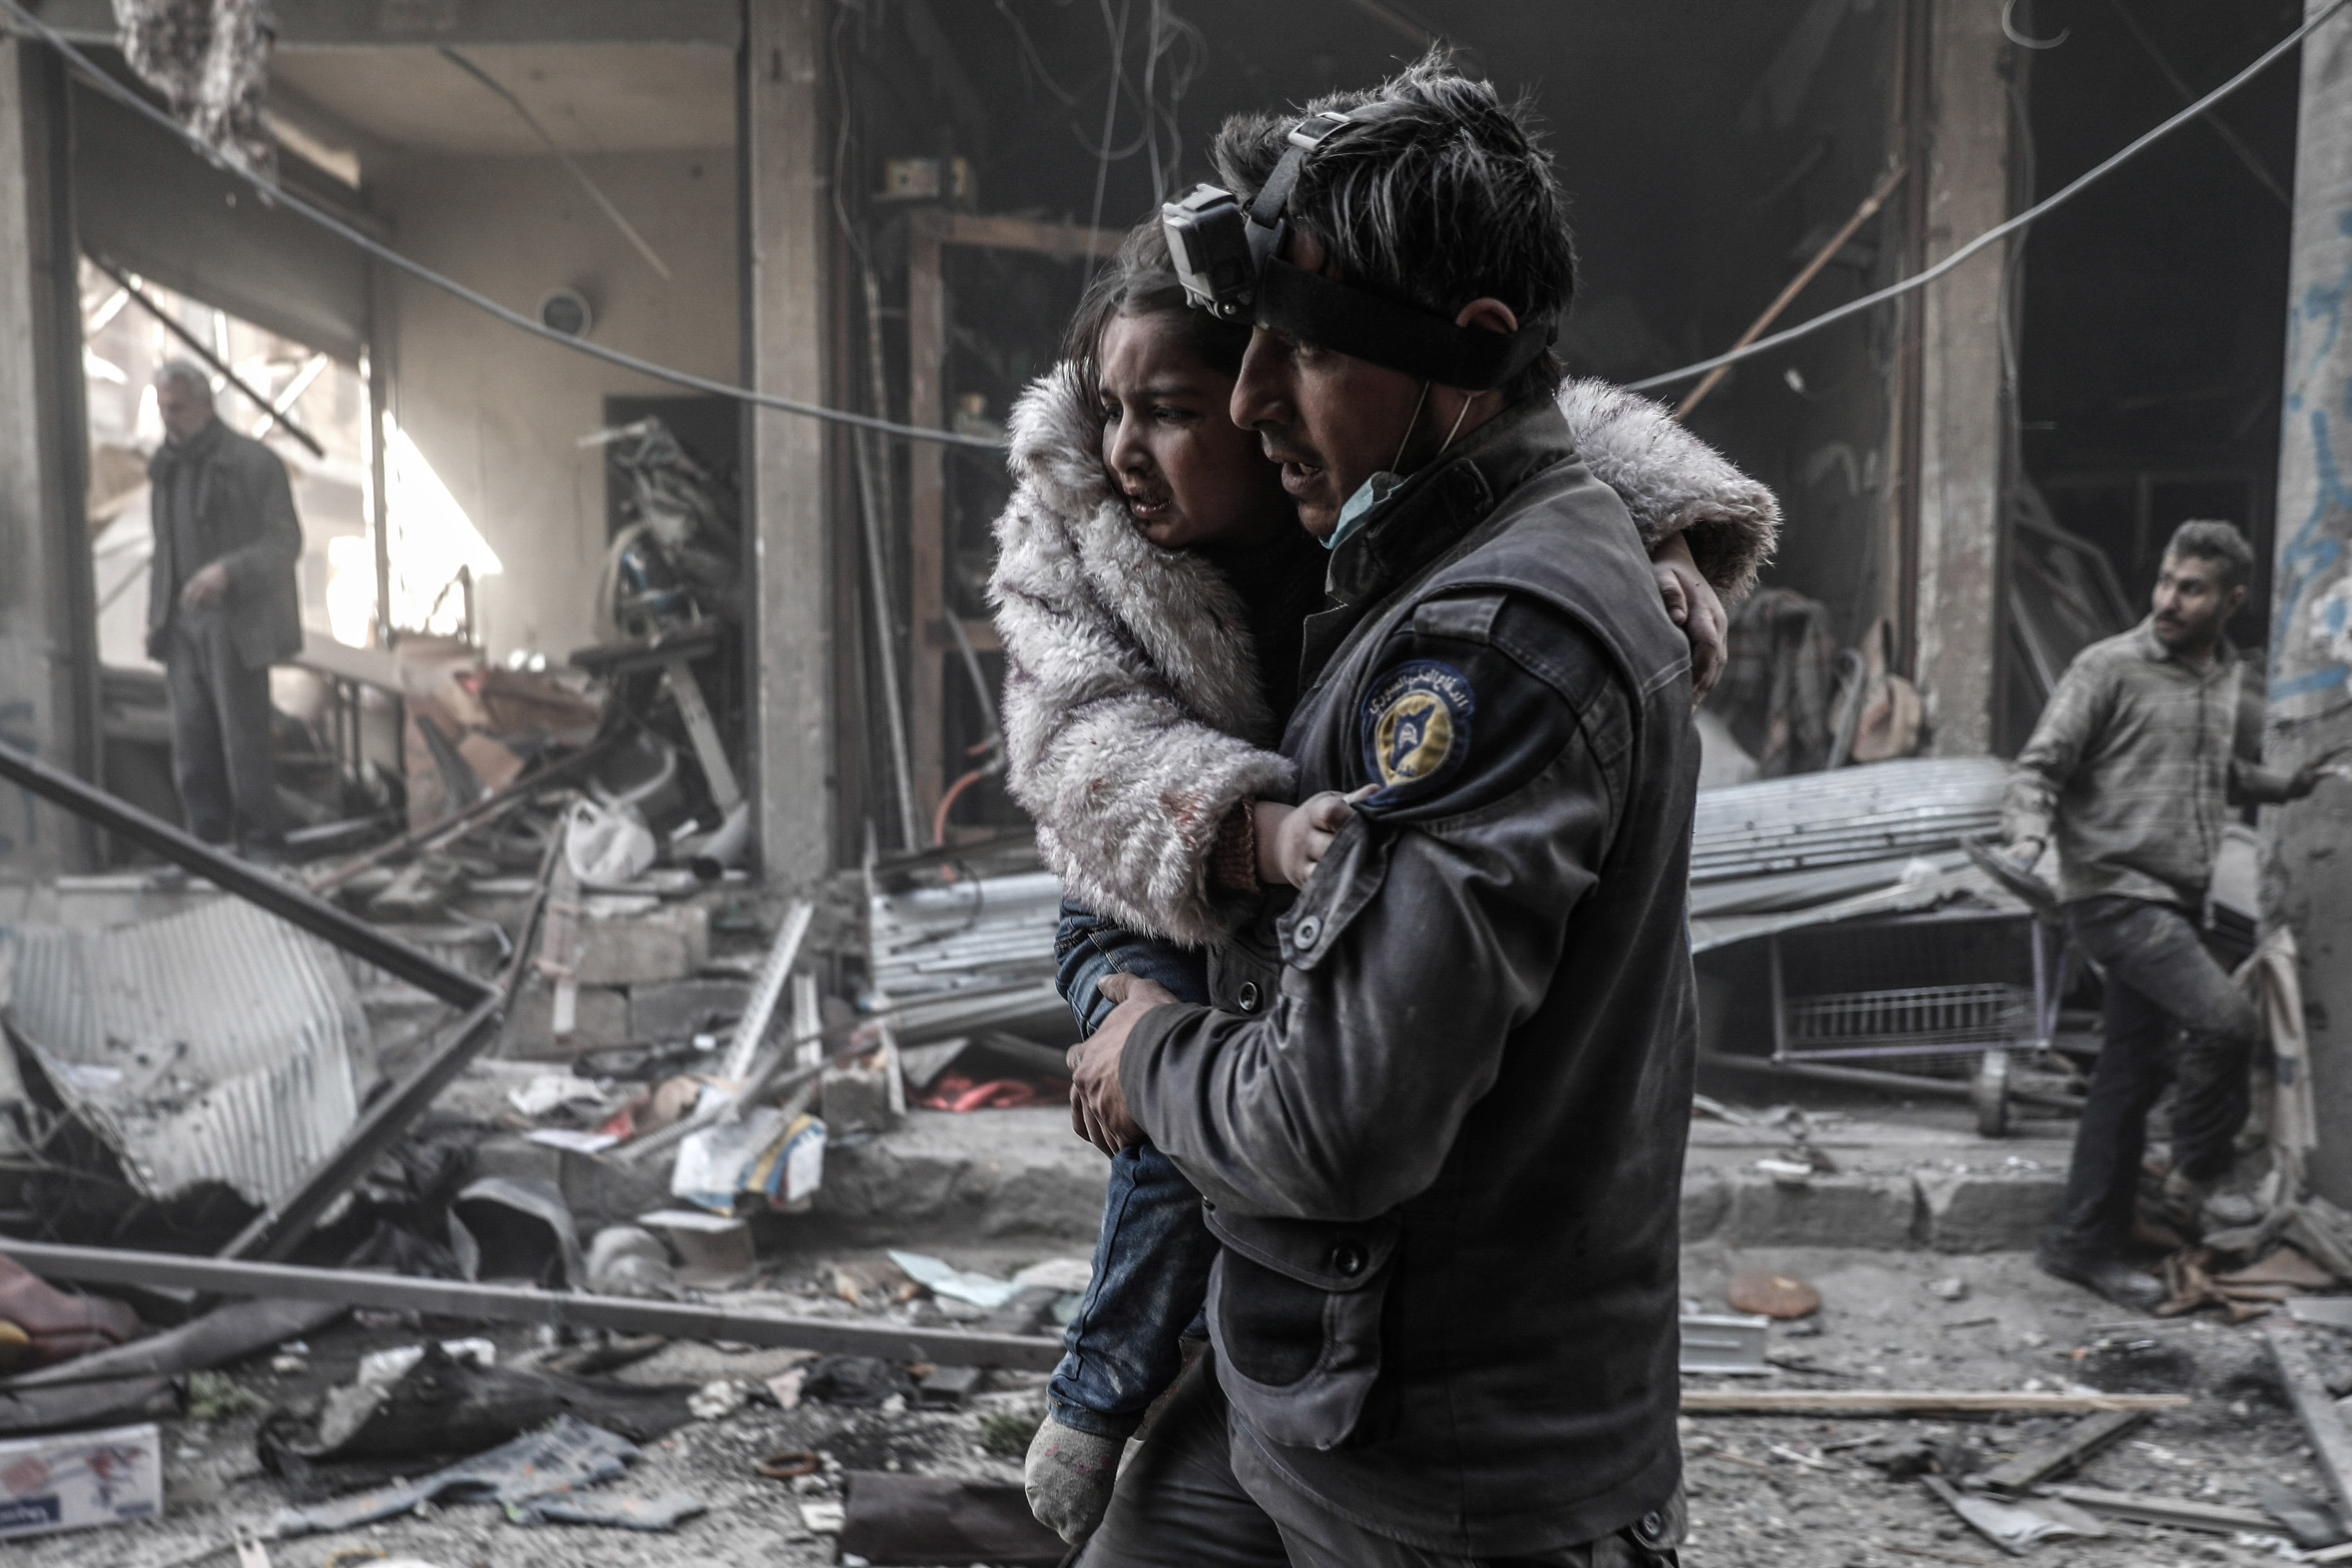 A member of the Syrian Civil Defence volunteers, also known as the White Helmets, carries a wounded girl amid the rubble following reported government airstrike on the rebel-held town of Douma, on the eastern outskirts of the capital Damascus, on February 25, 2017. Syrian regime forces carried out raids on several areas in the country, targeting mainly the besieged town of Douma, causing the deaths of at least 13 civilians, according to Syrian Observatory for Human Rights. The raids continued despite the United Nations confirmation a few days earlier that Moscow formally asked its ally Damascus to stop launching strikes during the Geneva negotiations, which began earlier in the week. / AFP PHOTO / Sameer Al-Doumy